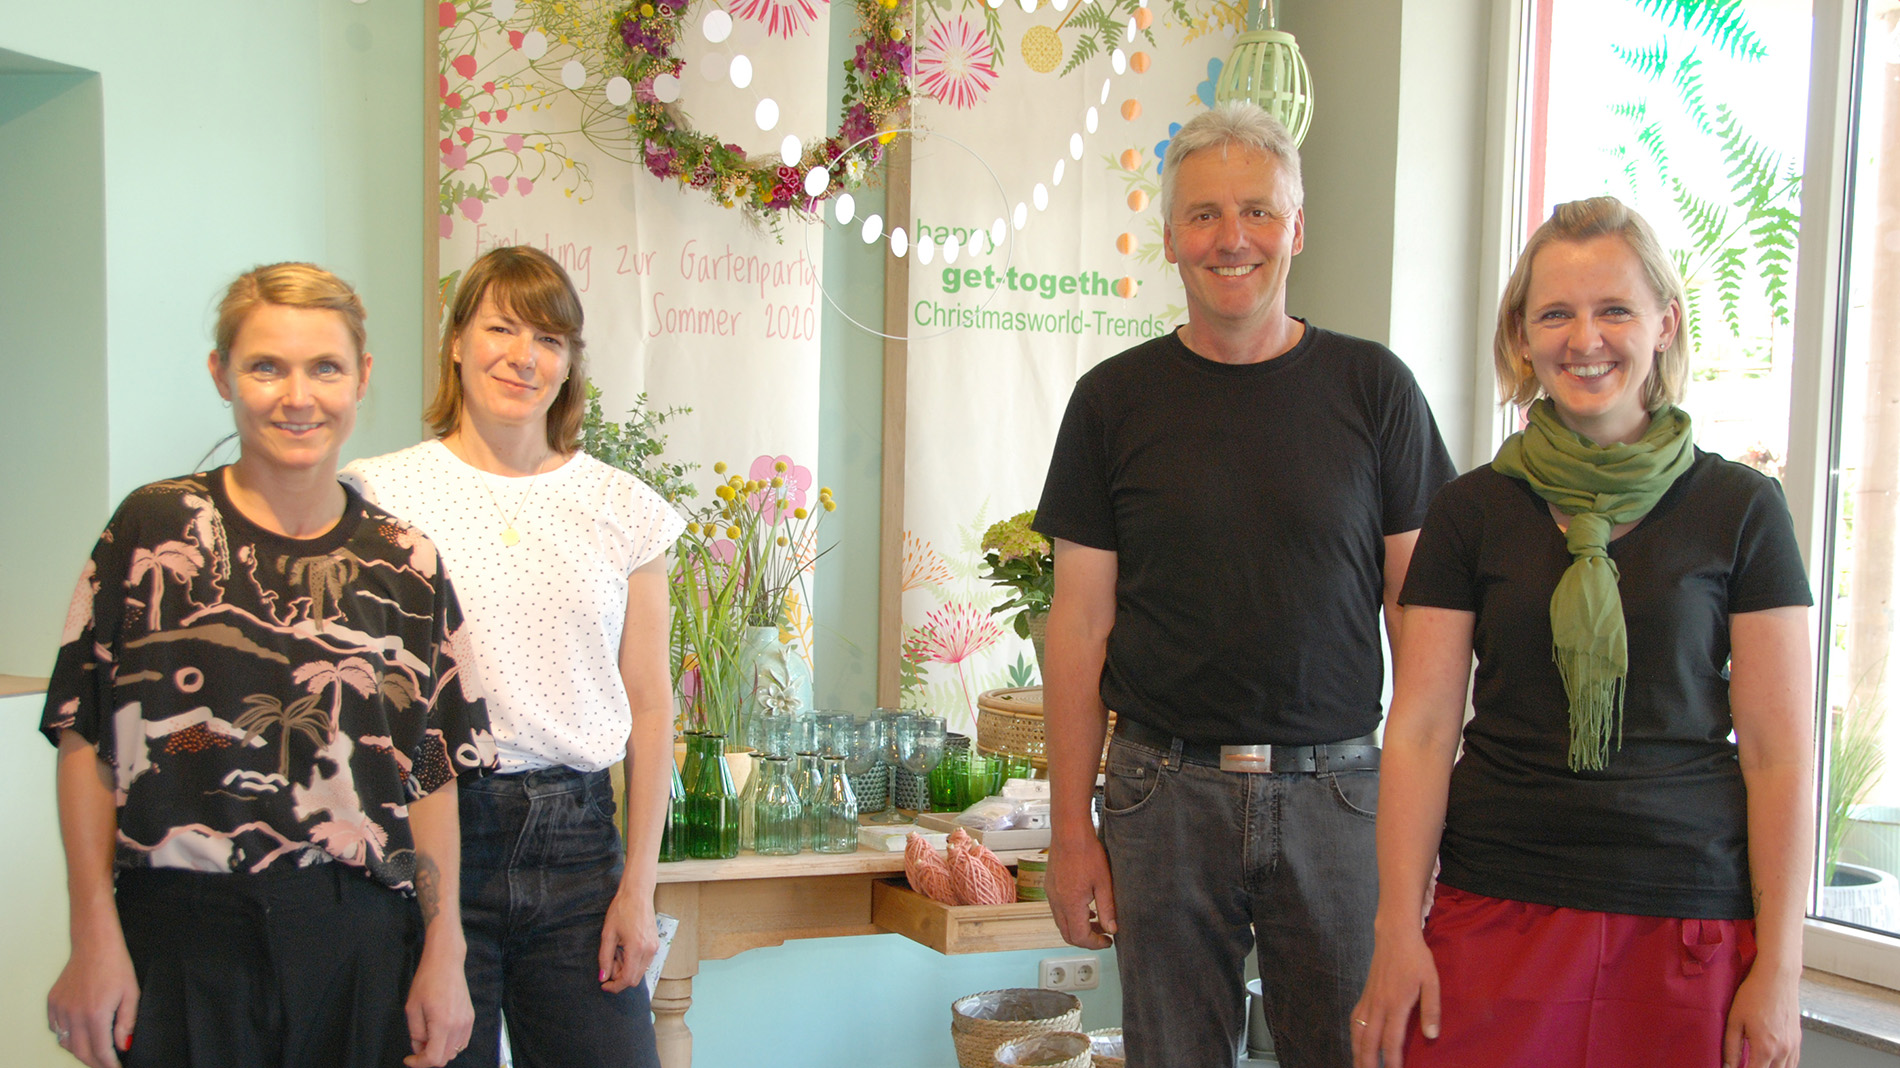 from left to right: Julia Nawra and Simone Maurer (experts in visual marketing and decoration at Juni Visuelles Marketing), Elmar Fleck, owner of Blumenlädchen Morles, and his daughter Karolin Roßdeutsch